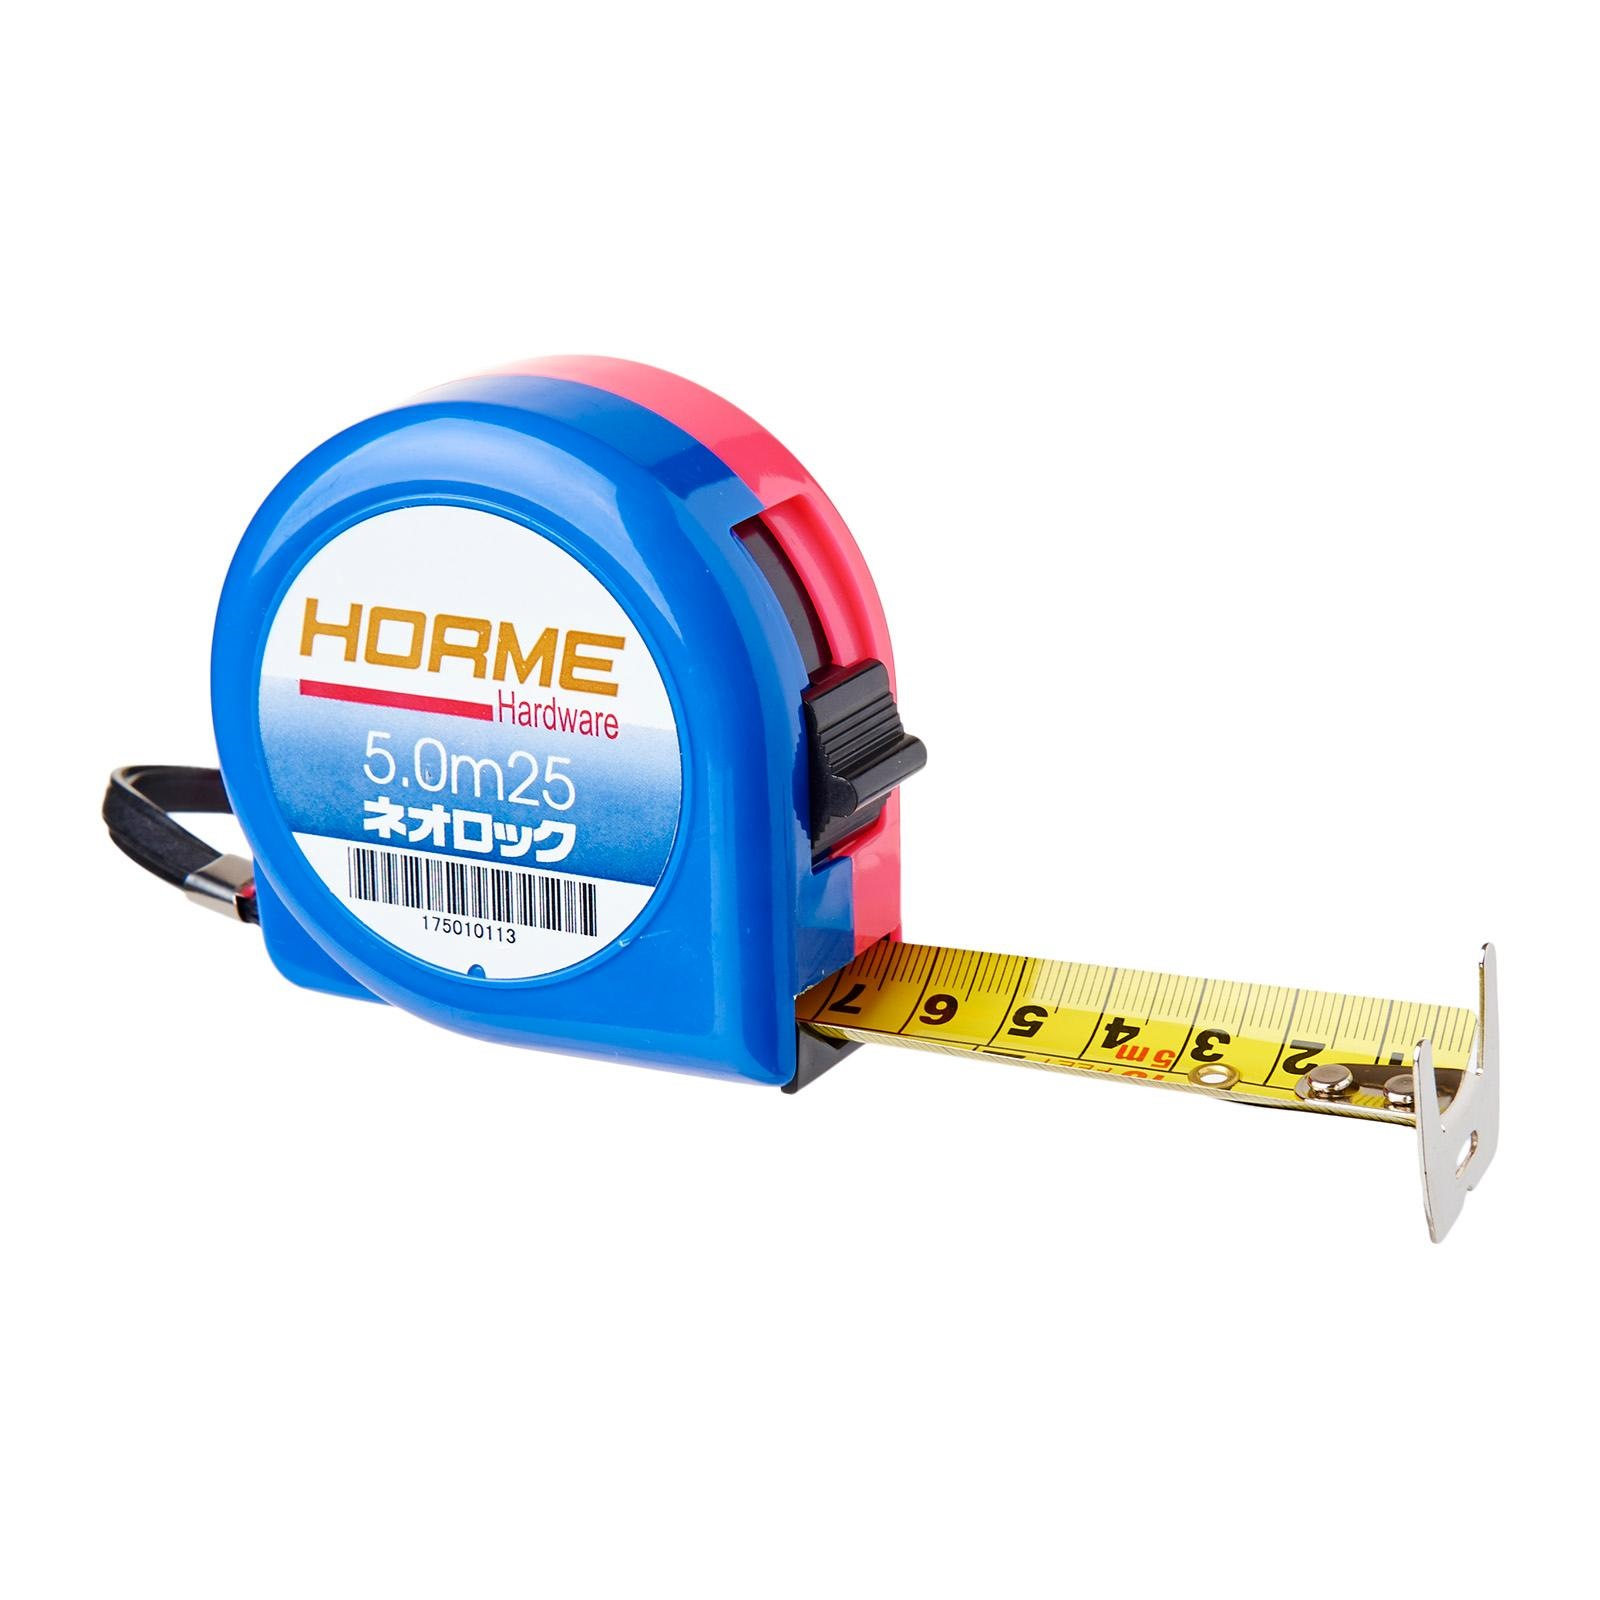 Horme Double Sided Measuring Tape Box Of 12 Singapore